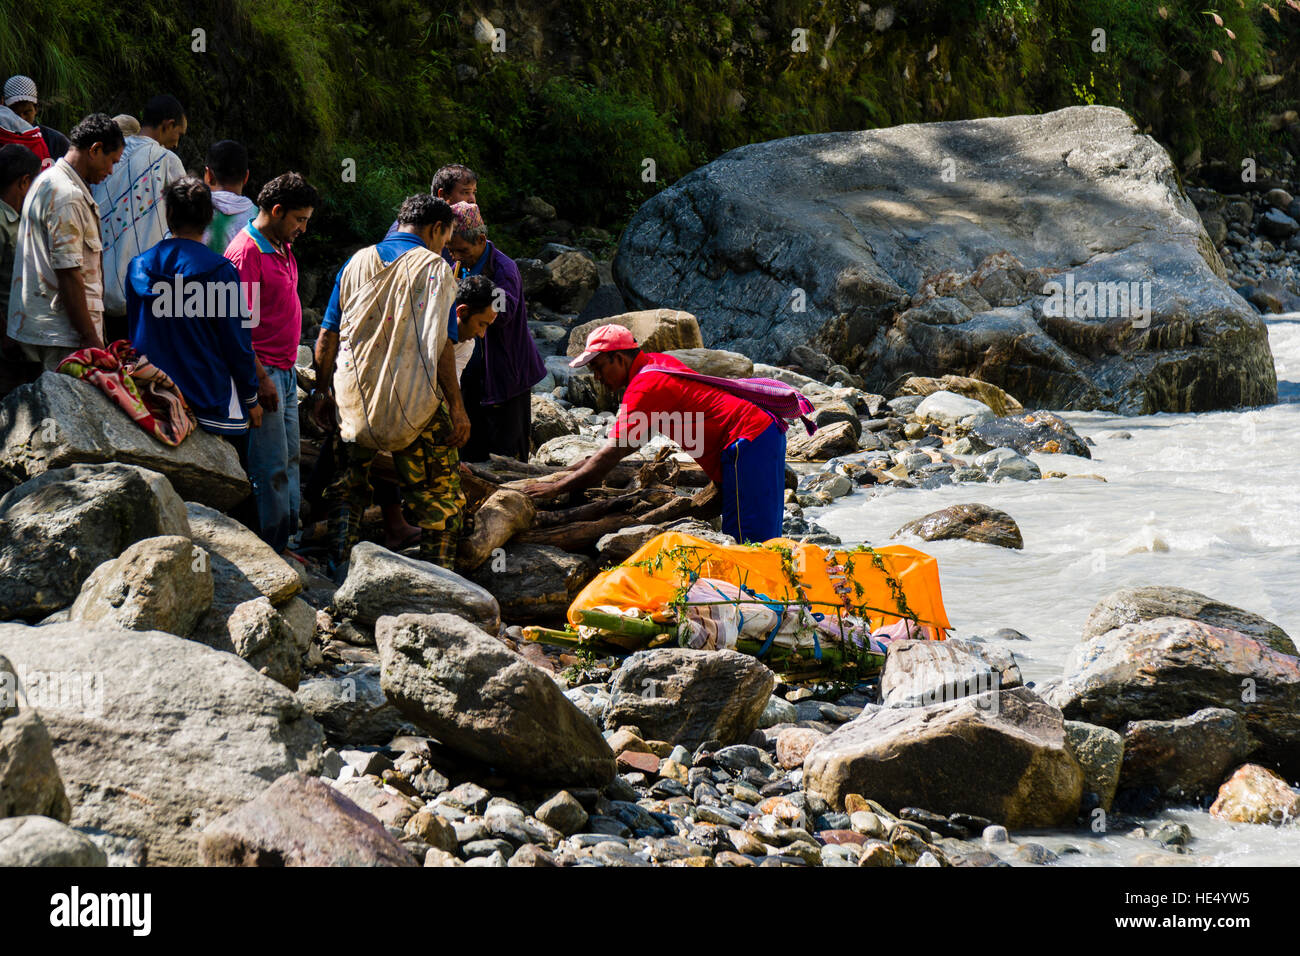 A group of local farmers are prepairing the funeral of a death body at the cremation ground on the bank of the river - Stock Image